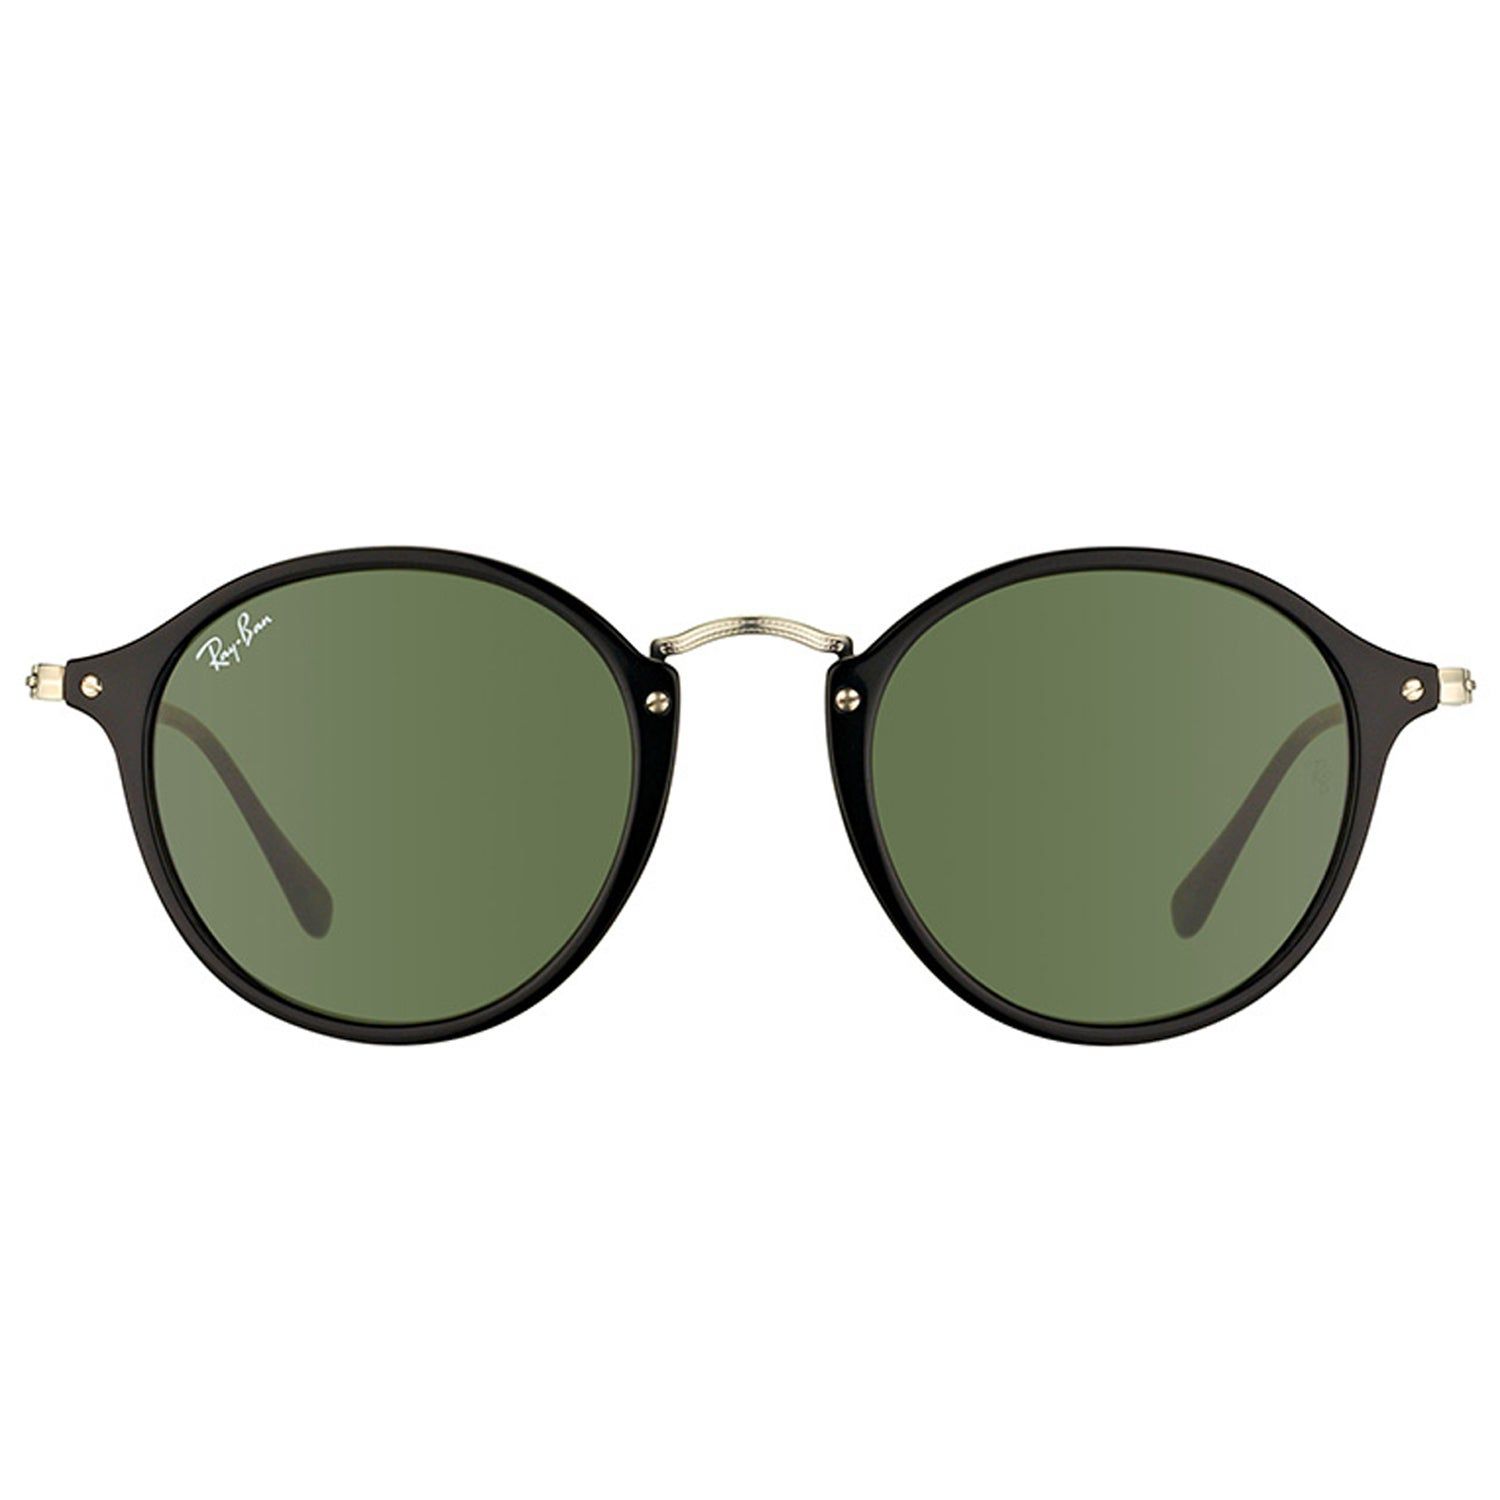 866aacbb28bd Shop Ray-Ban Unisex RB 2447 901 Black Frame and Green Lens 49mm Round  Sunglasses - On Sale - Free Shipping Today - Overstock - 16824173